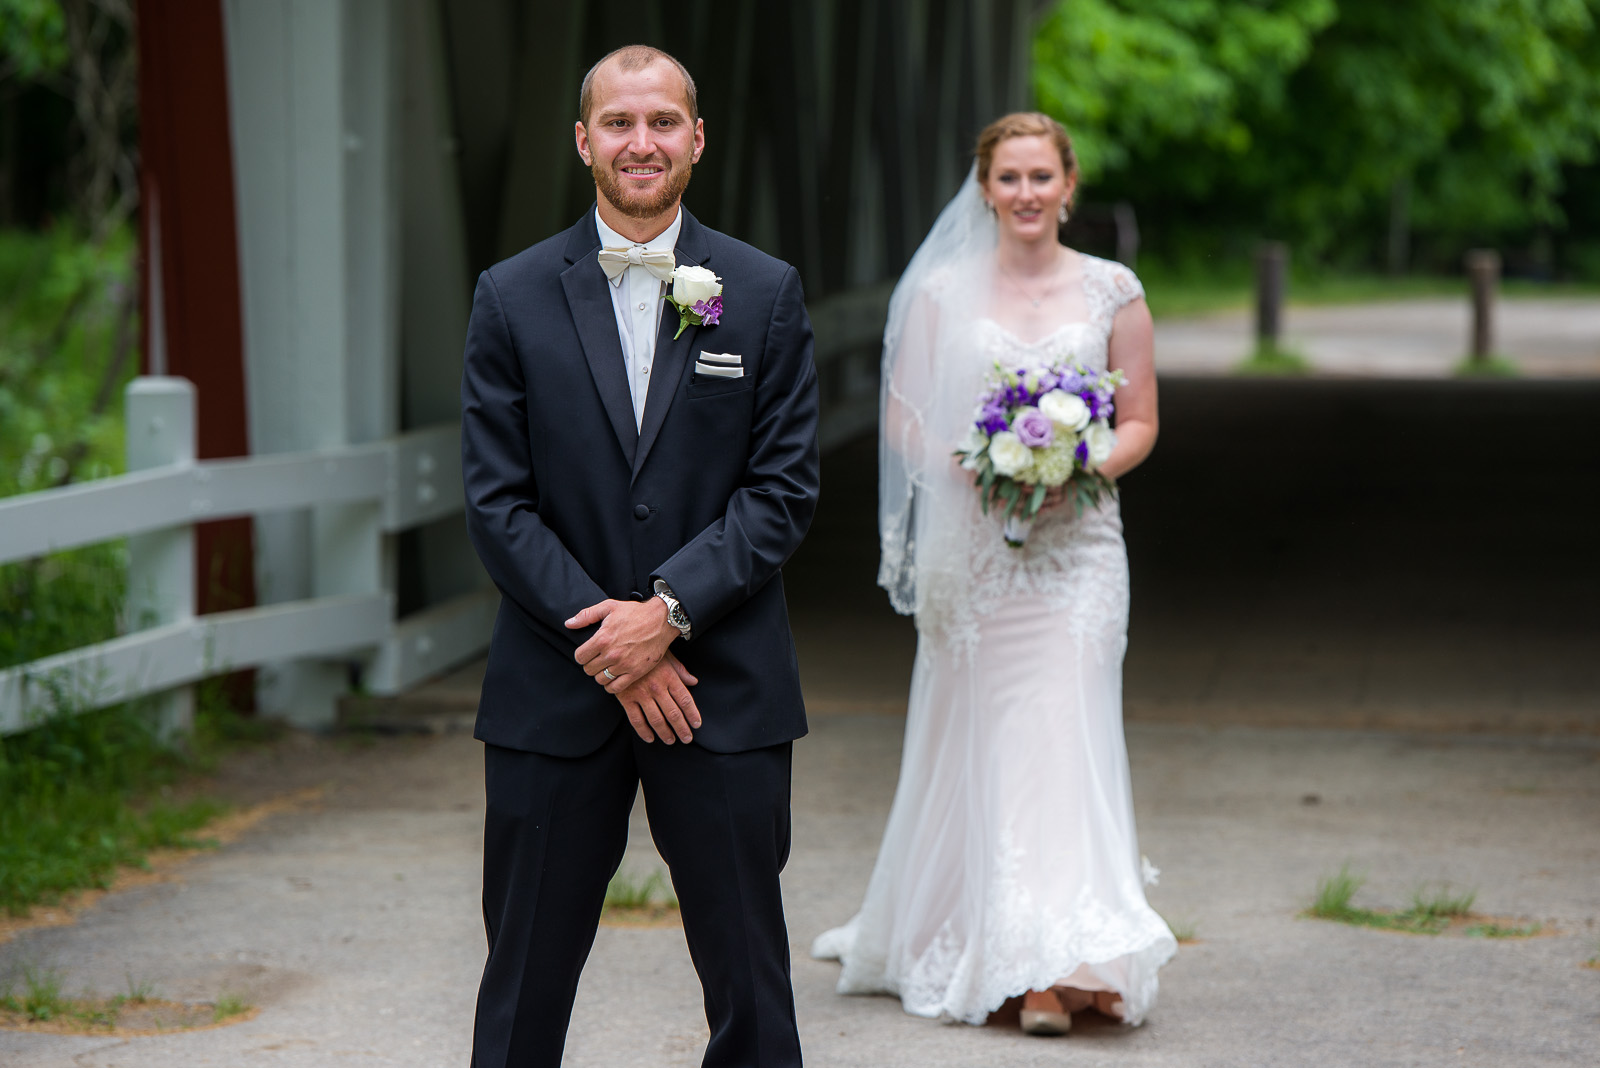 eric_and_christy_photographers_blog_wedding_katieandy-5